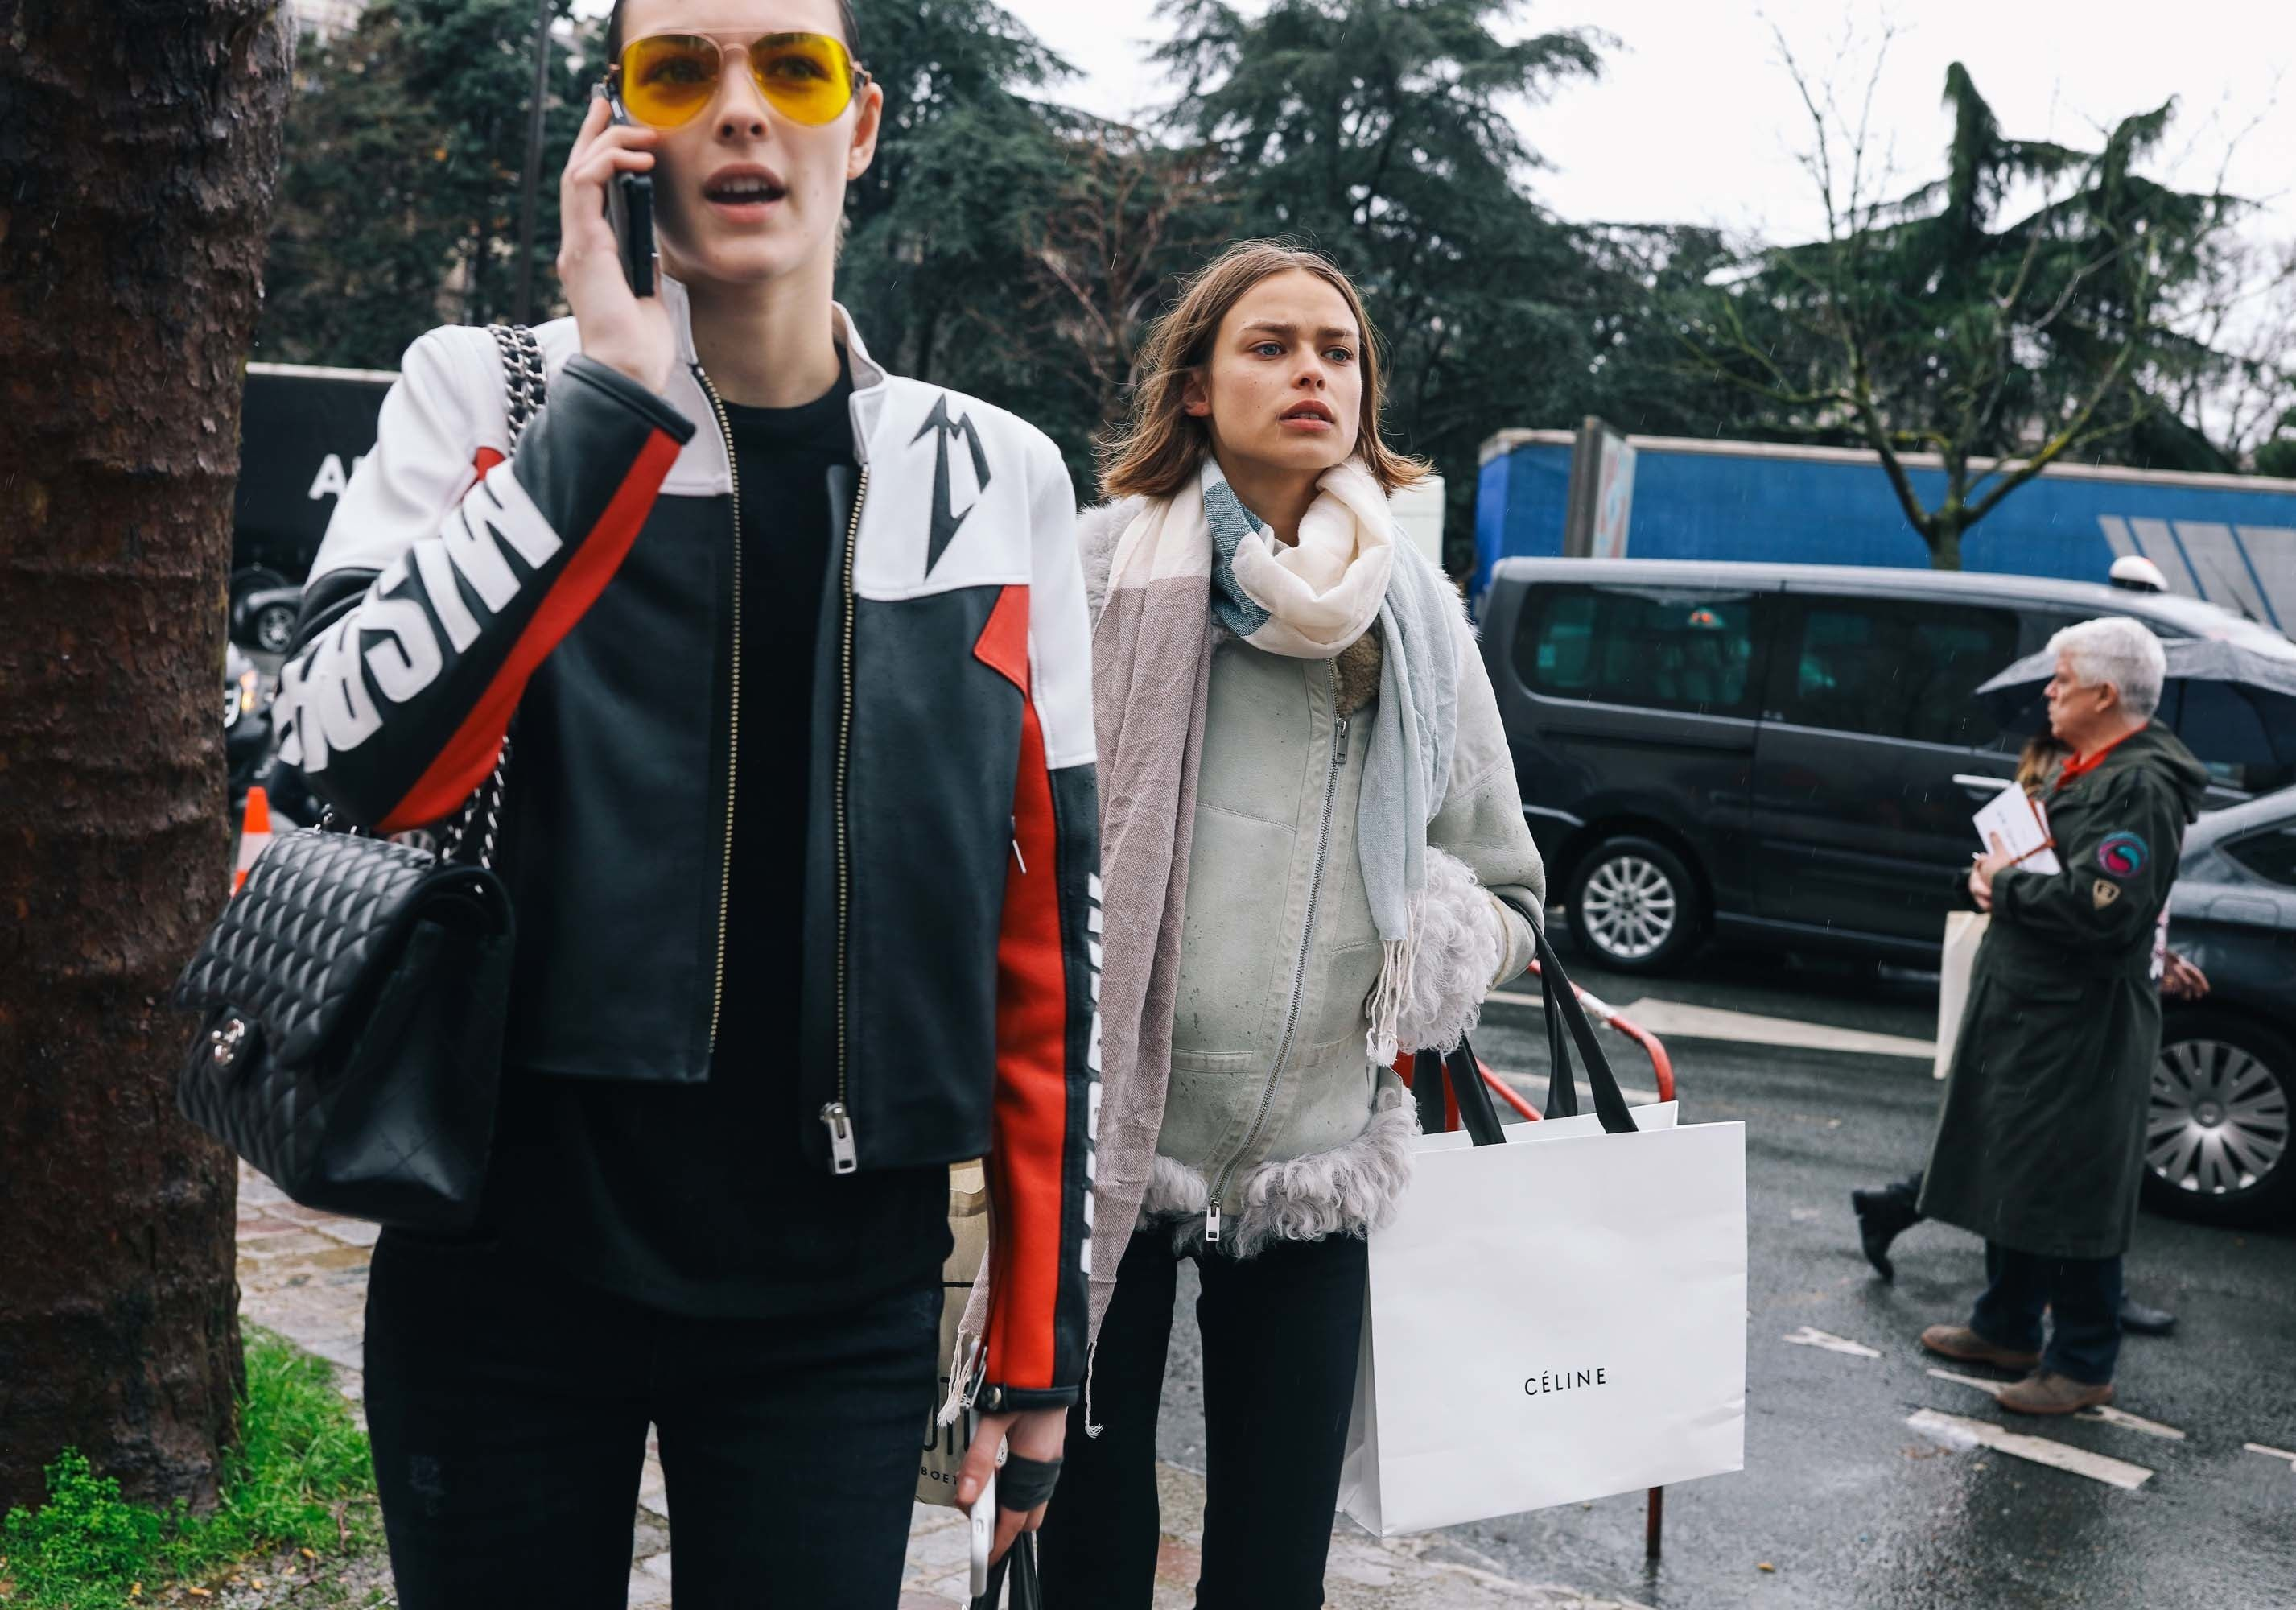 Vittoria Ceretti in a Misbhv jacket and Chanel bag